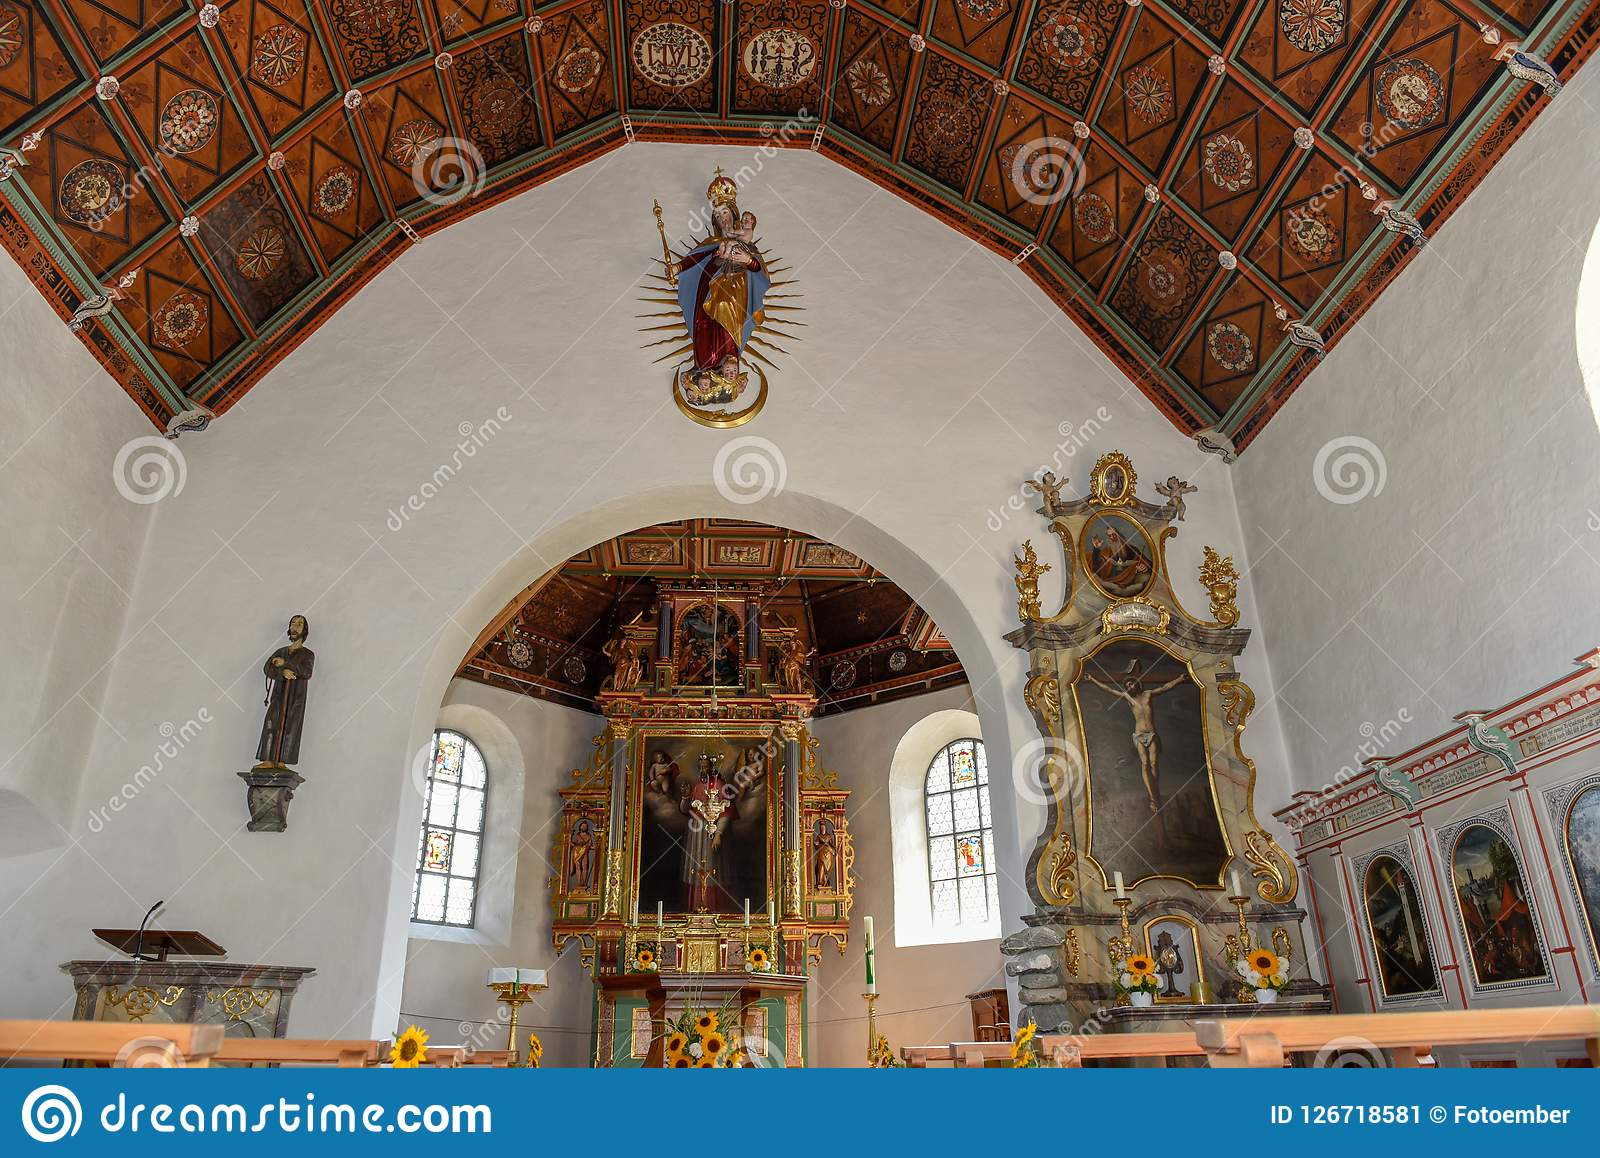 The church of Flüeli-Ranft birth and life place of saint hermit. Niklaus von Flüe on the Swiss alps Stock Image